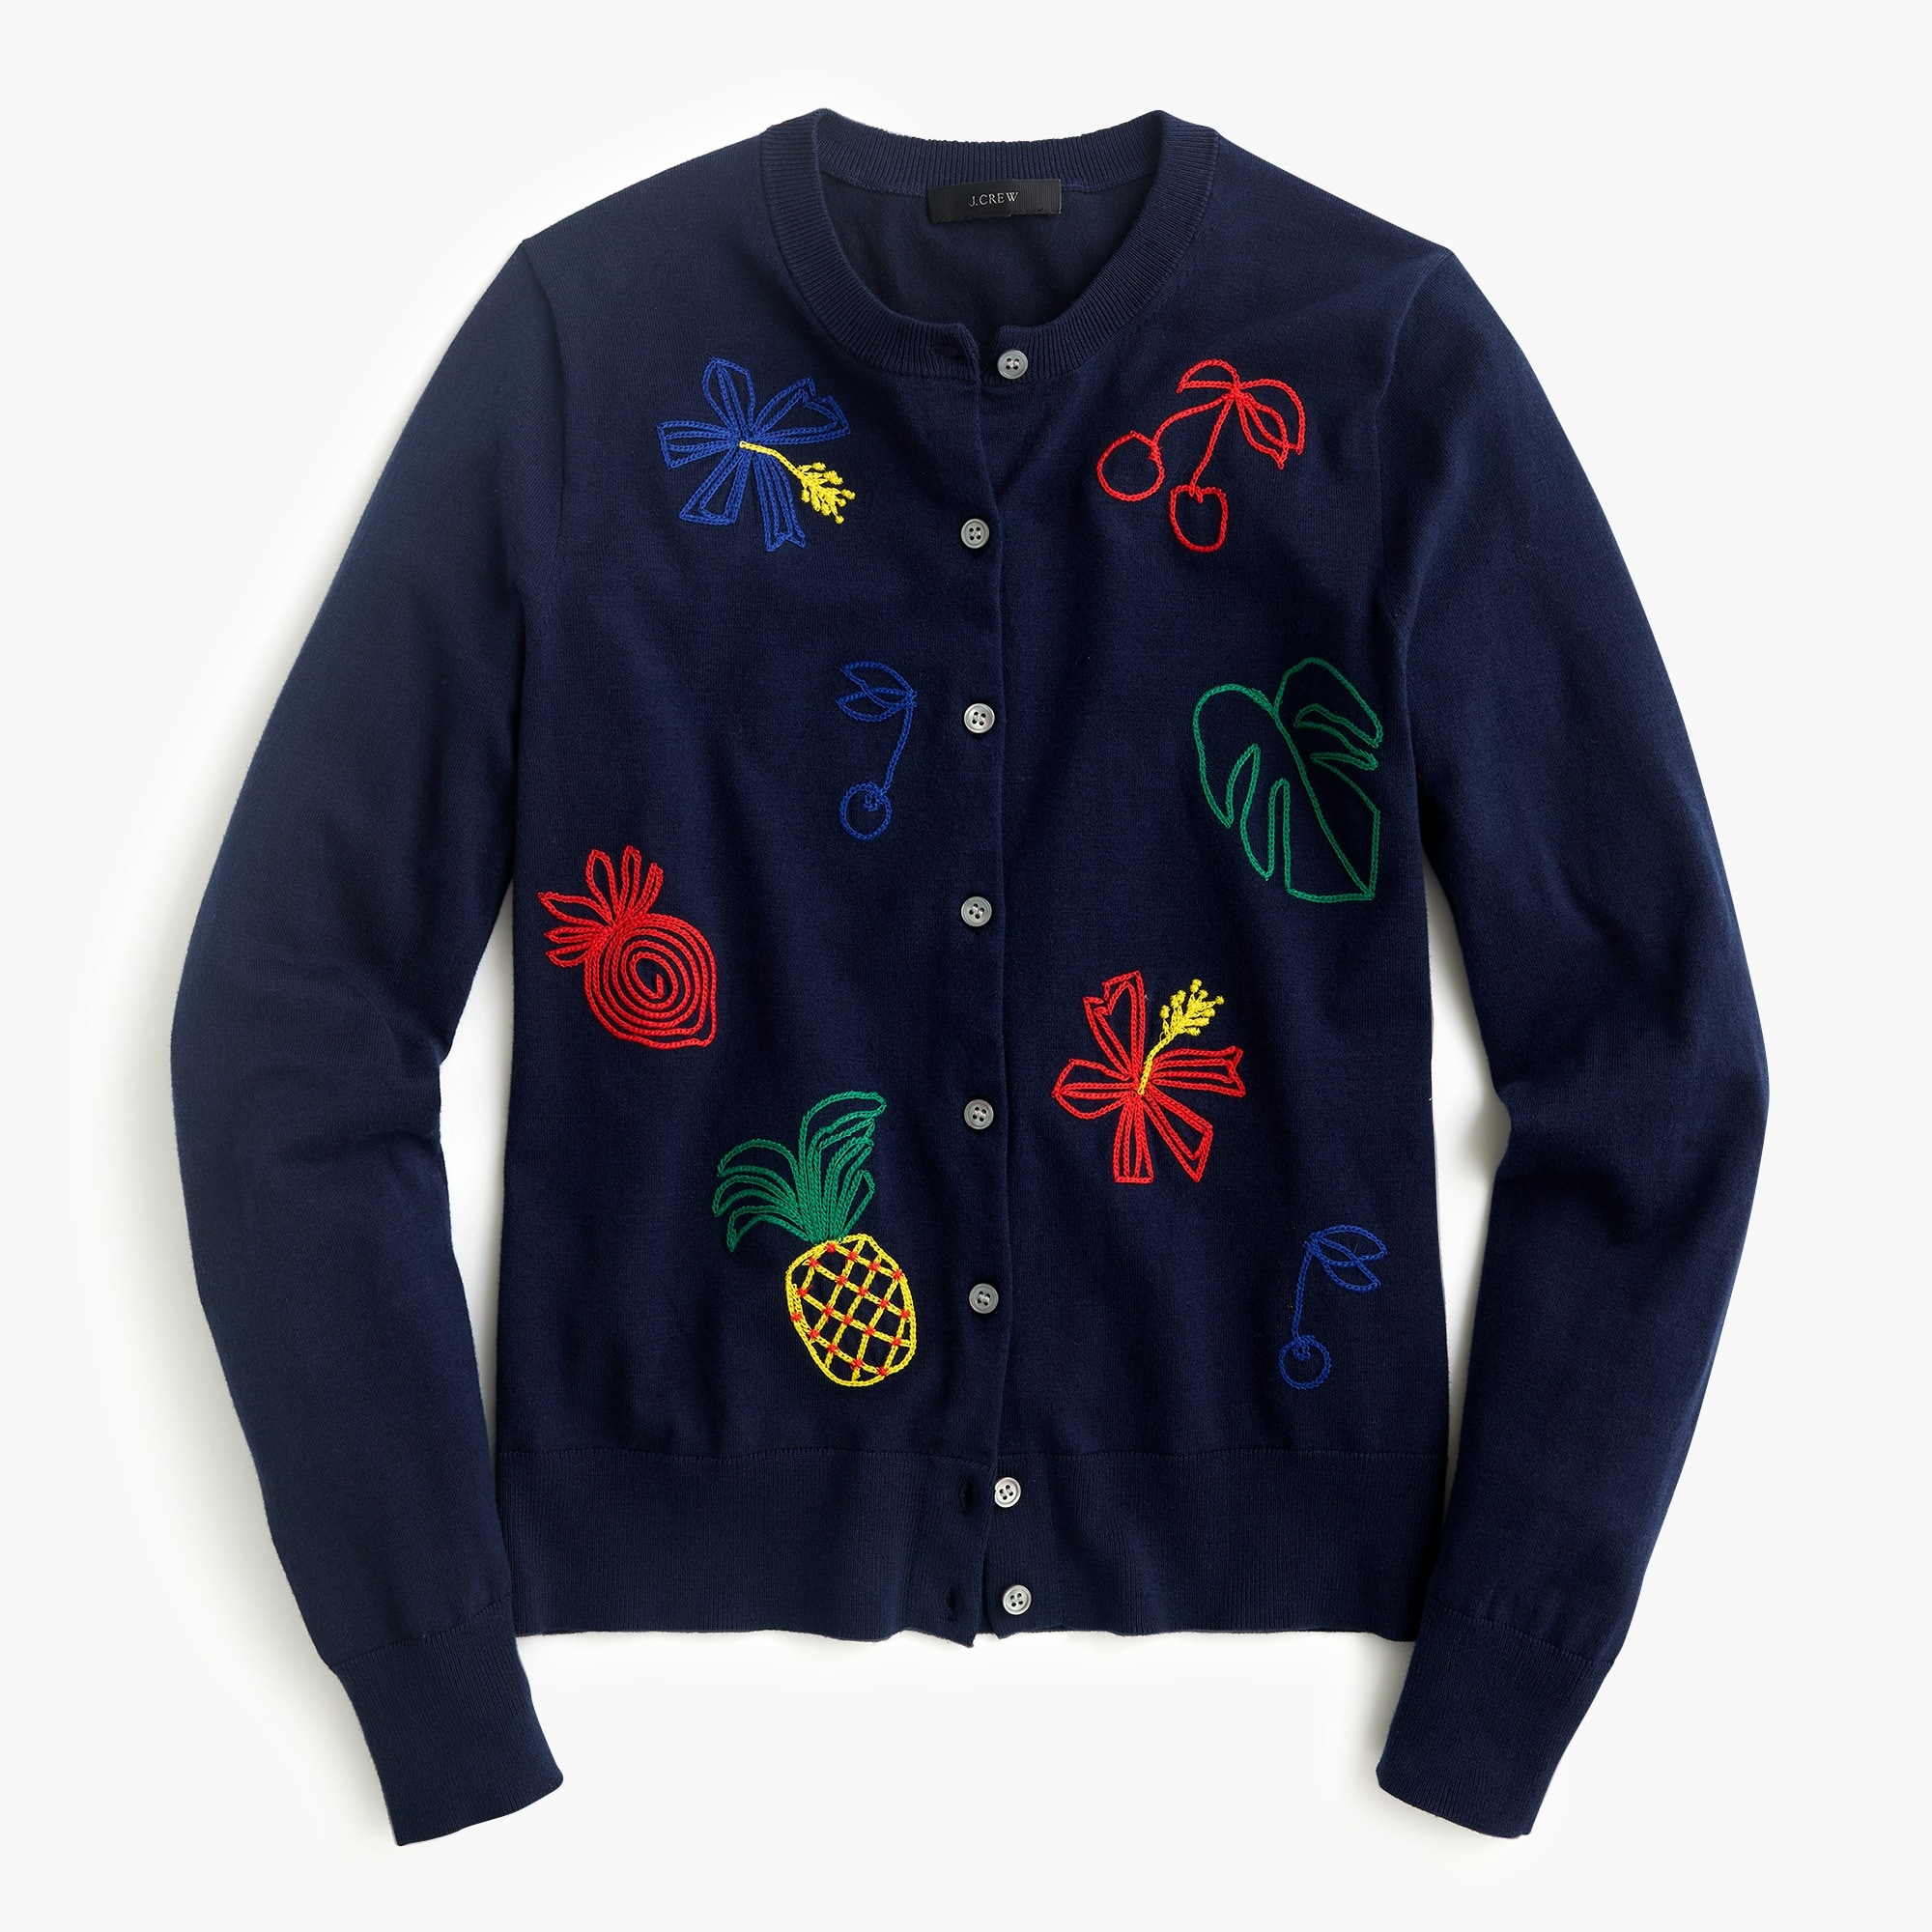 Image 2 for Embroidered fruit cotton Jackie cardigan sweater